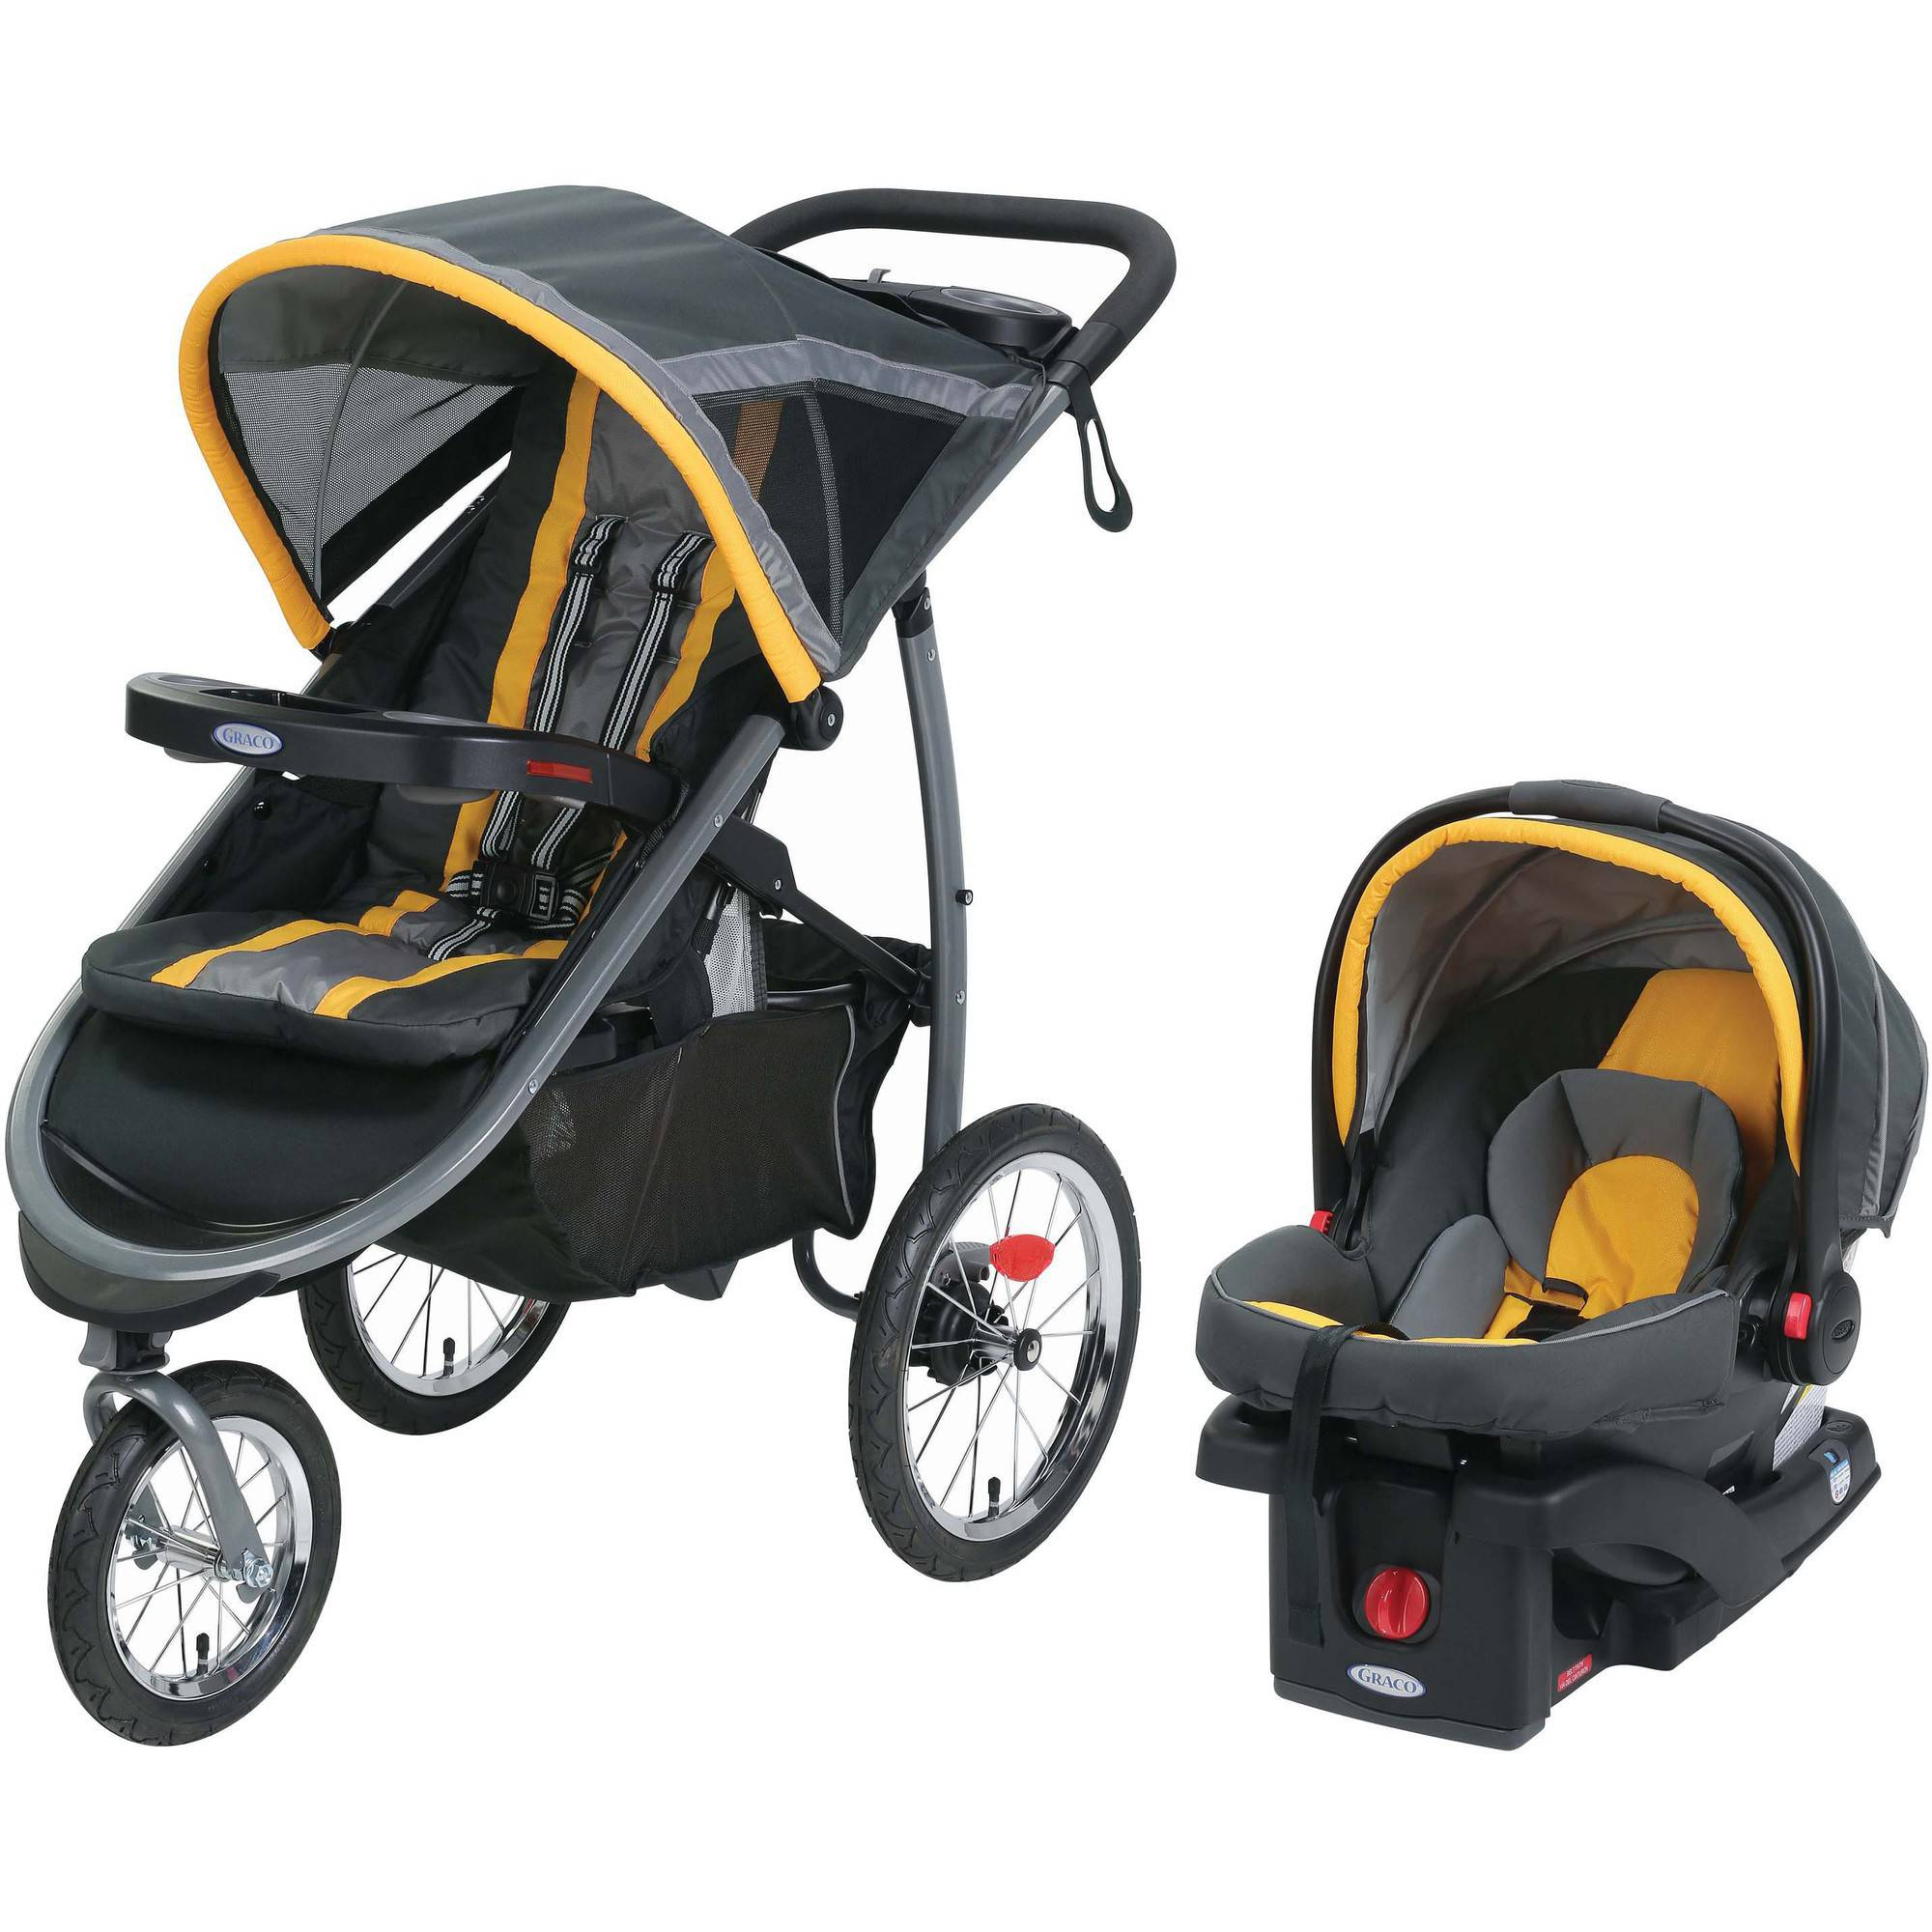 Graco FastAction Jogger Travel System with SnugRide Click Connect 35 Elite Car Seat, Sunshine